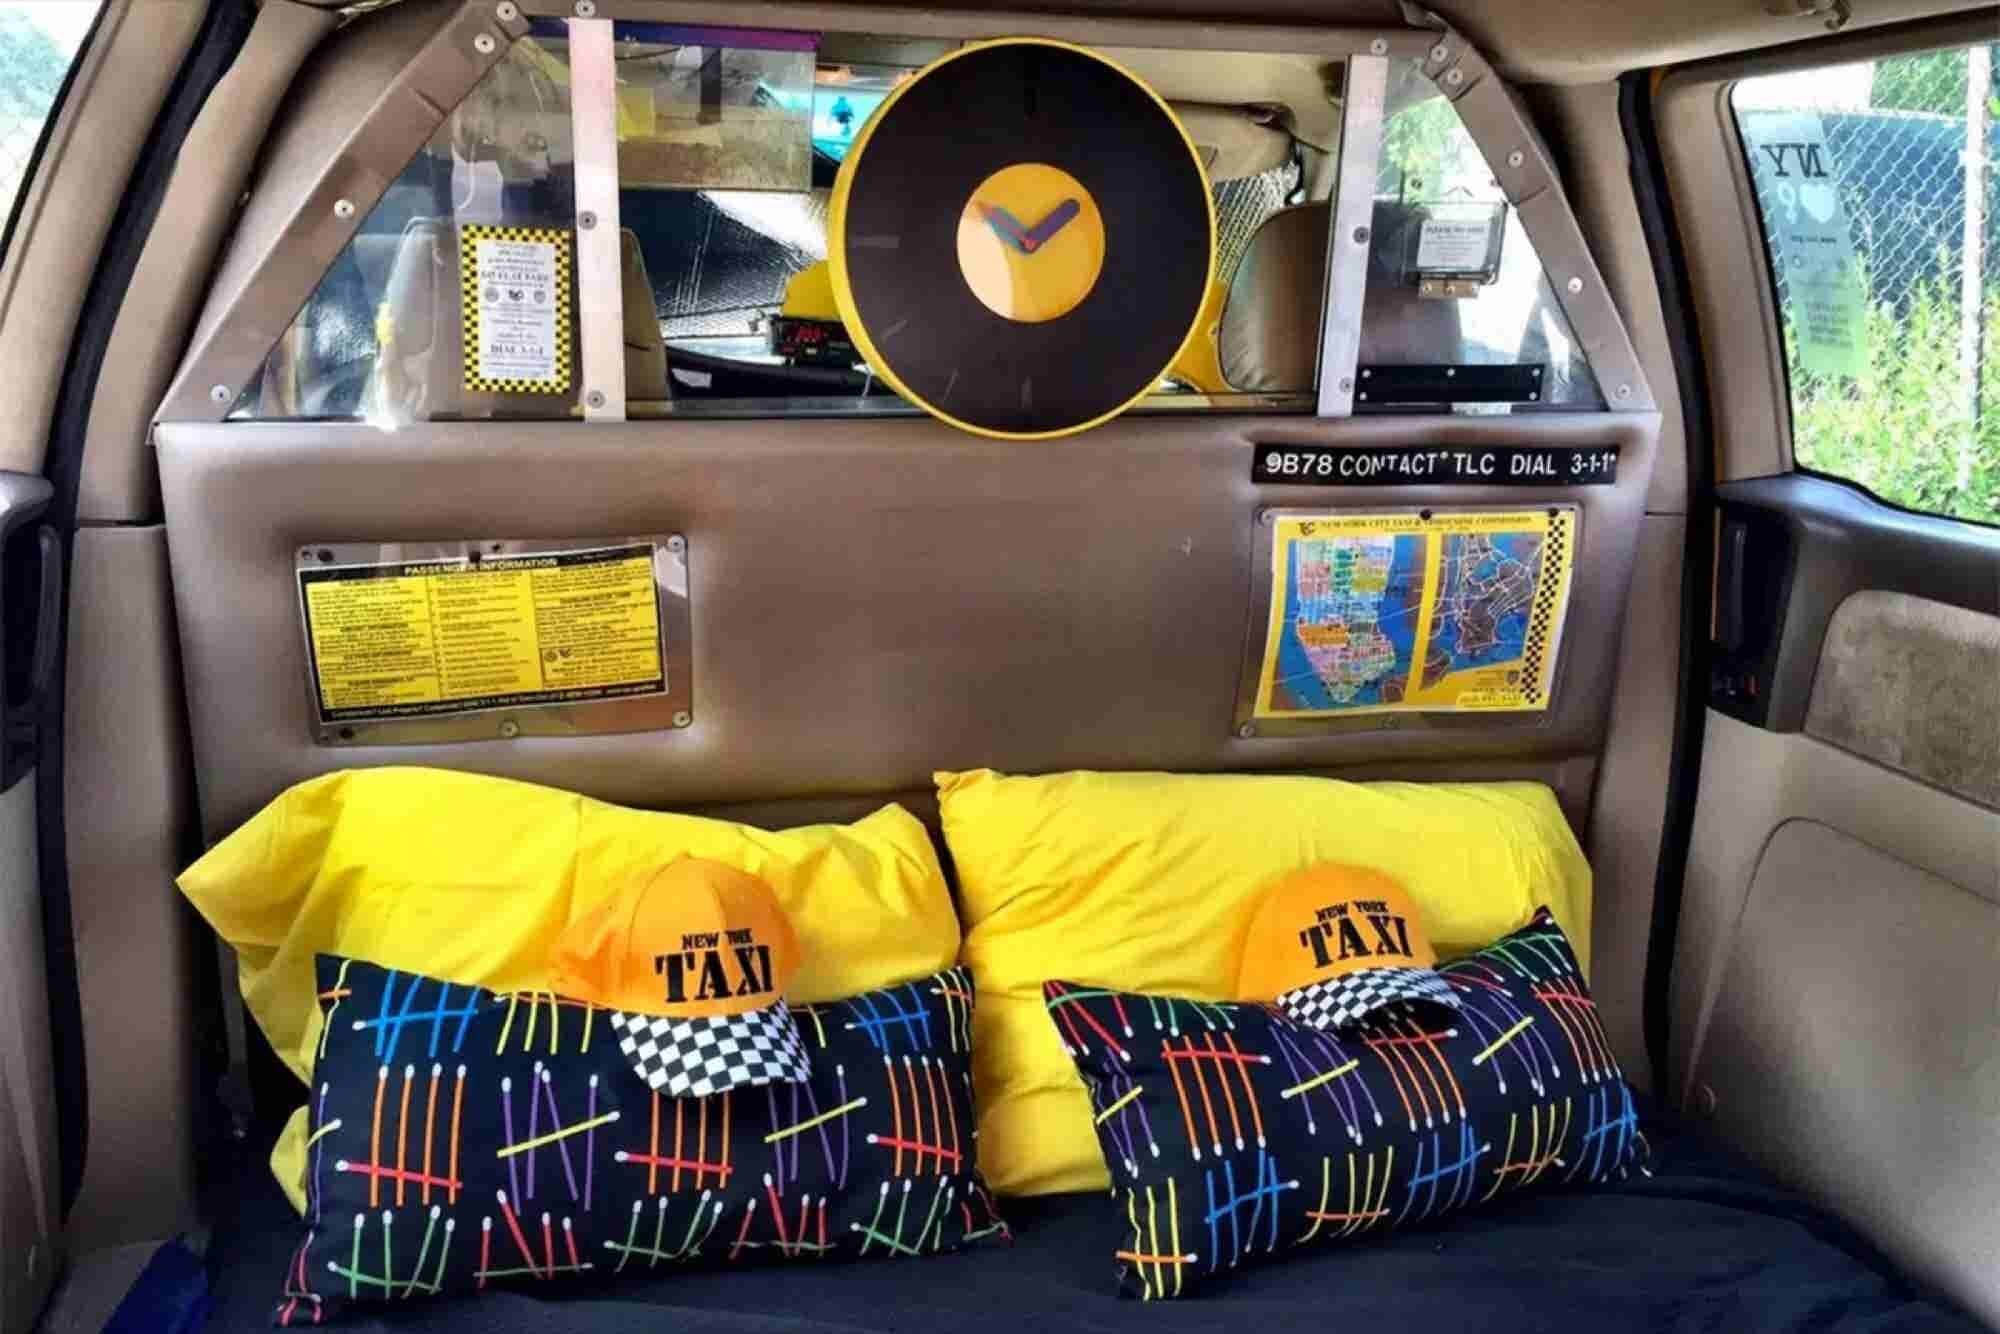 12 Weird and Wonderful Airbnb Listings, Including a New York Taxi and an Igloo